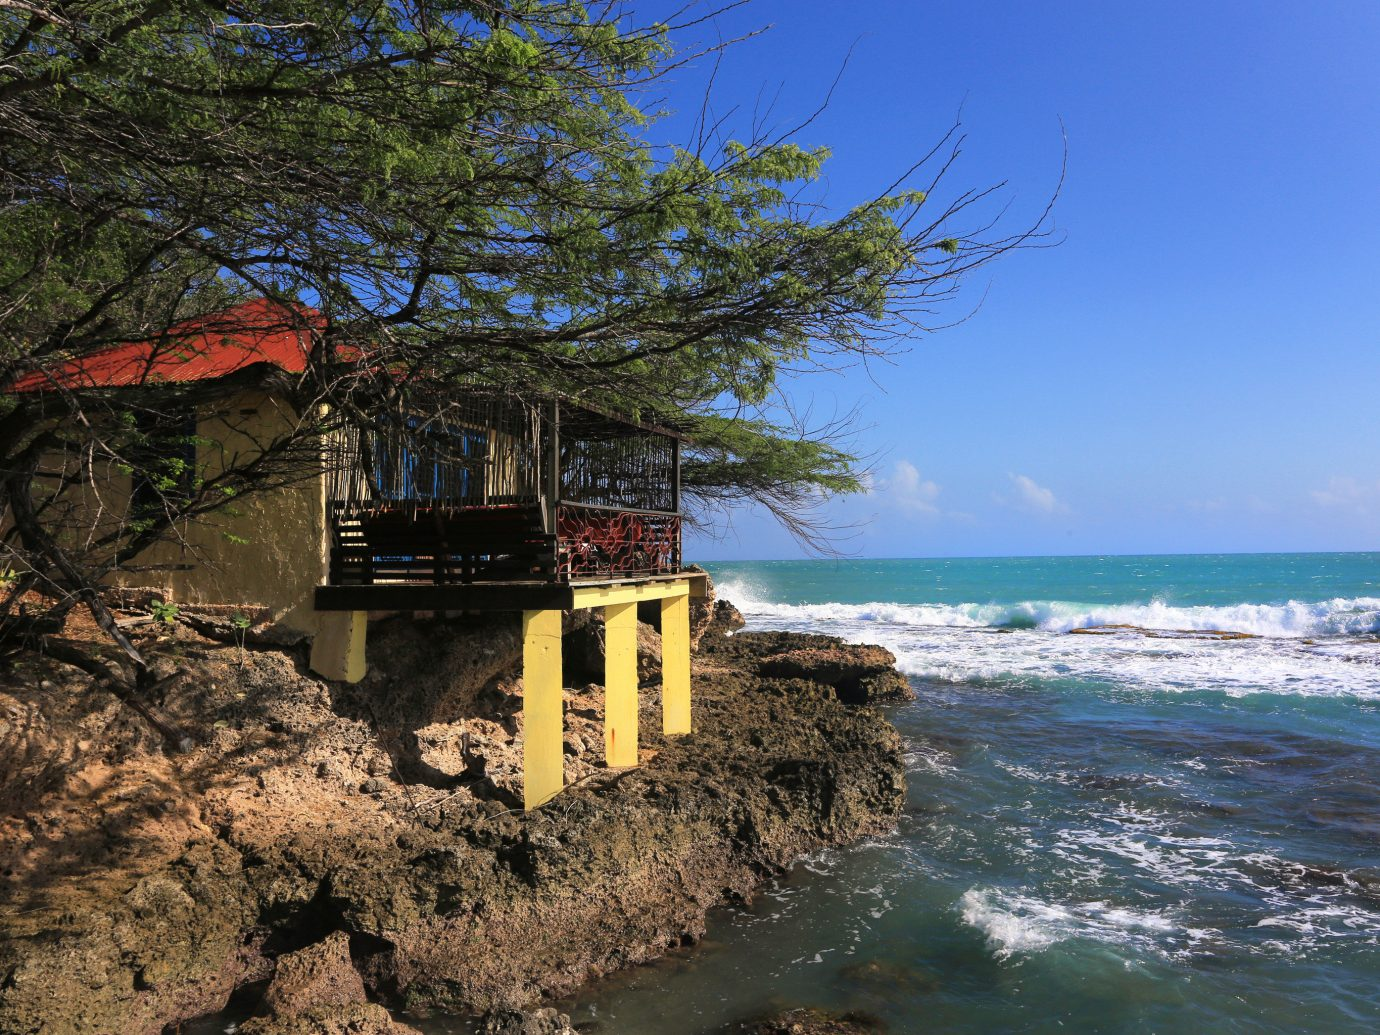 Exterior view of Jake's in Jamaica